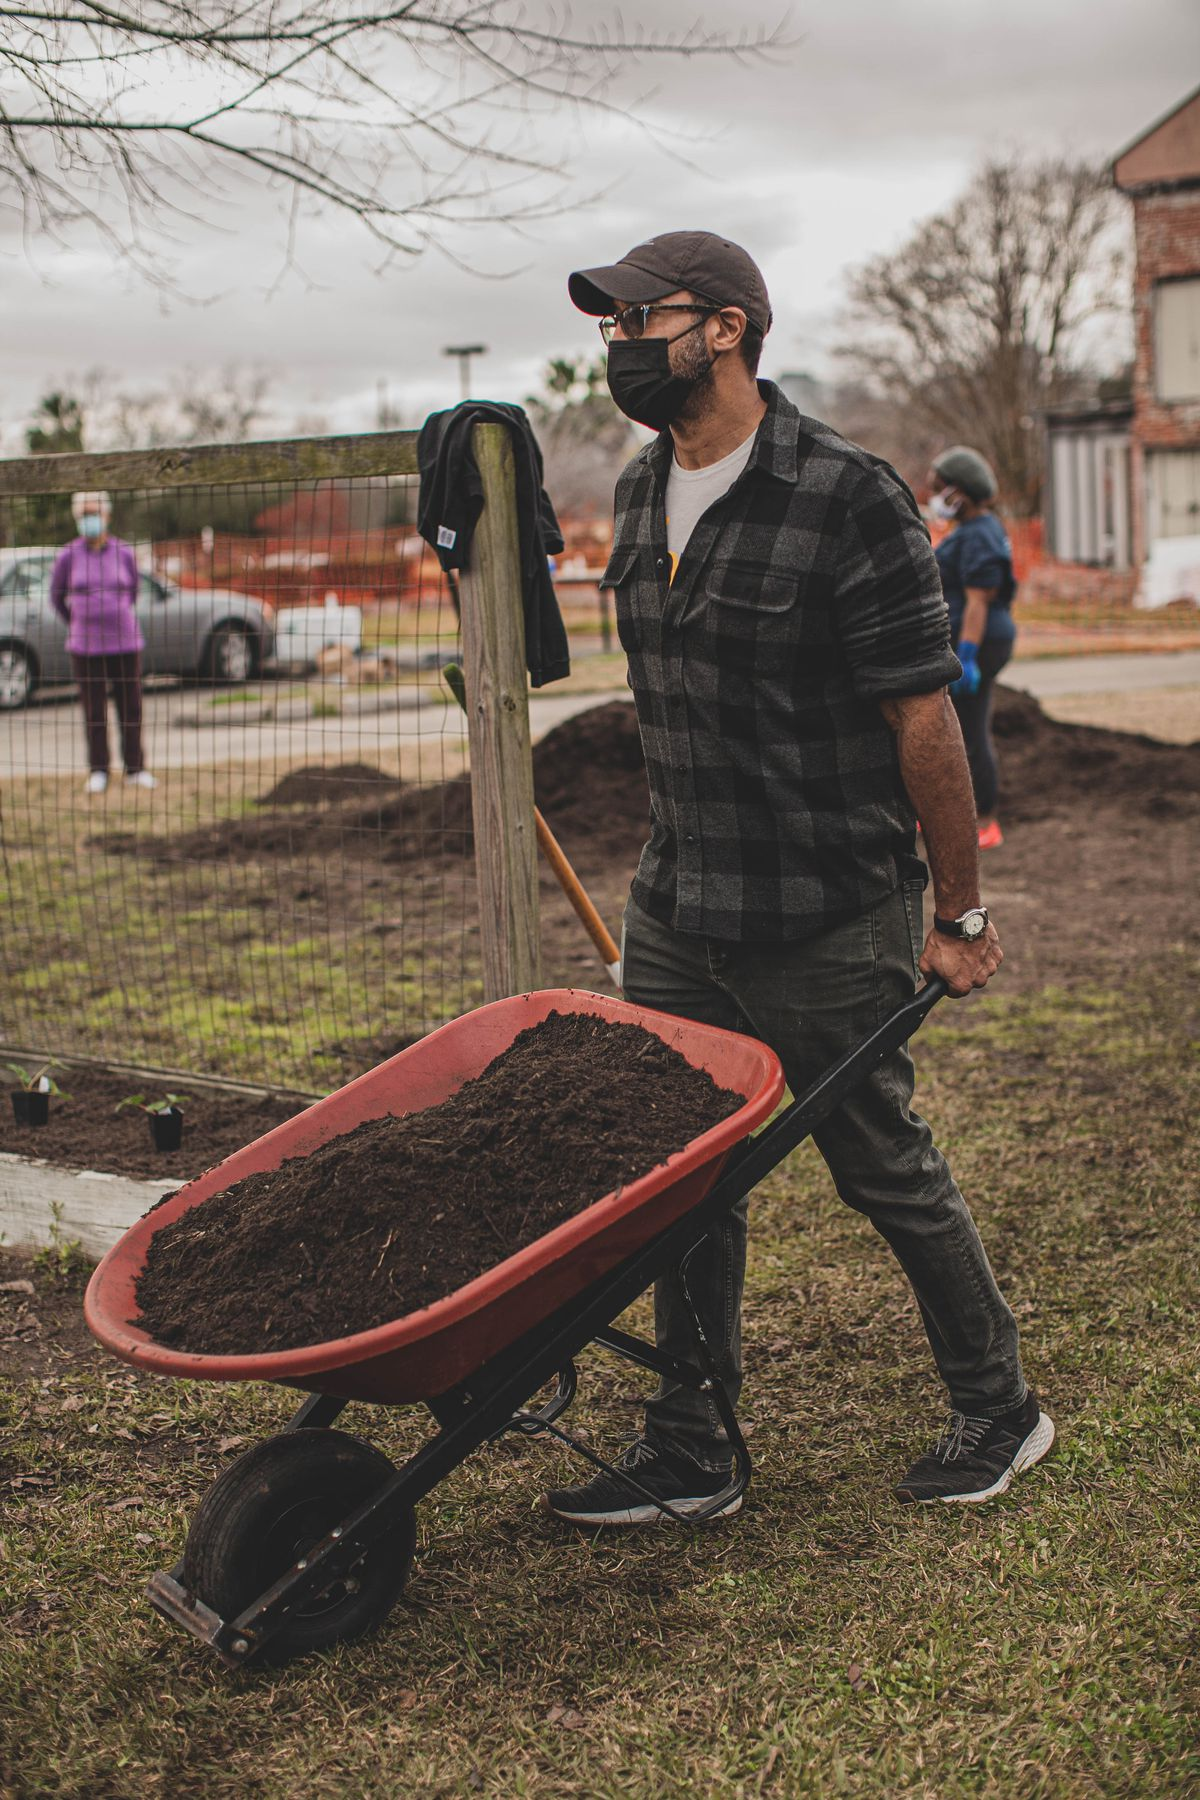 A man wearing a black masks pushes a red wheelbarrow full of soil.